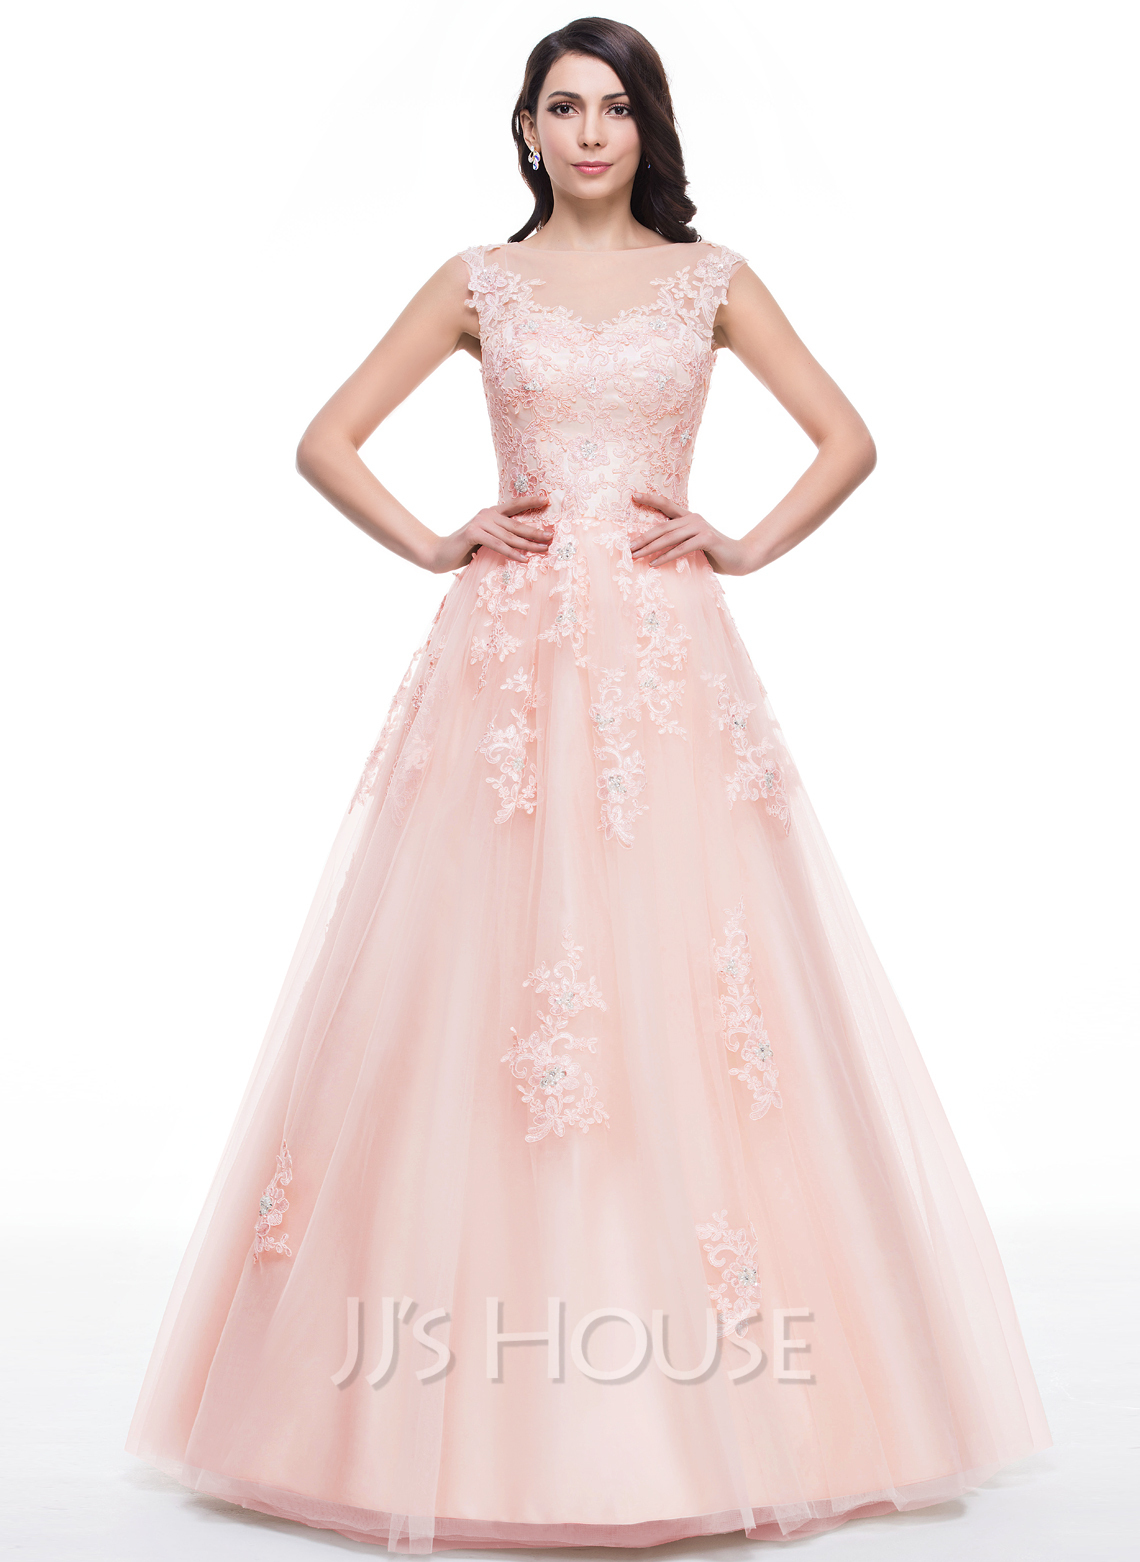 Ball-Gown Scoop Neck Floor-Length Tulle Prom Dresses With Beading Appliques  Lace Sequins. Loading zoom 9e296a5896ba